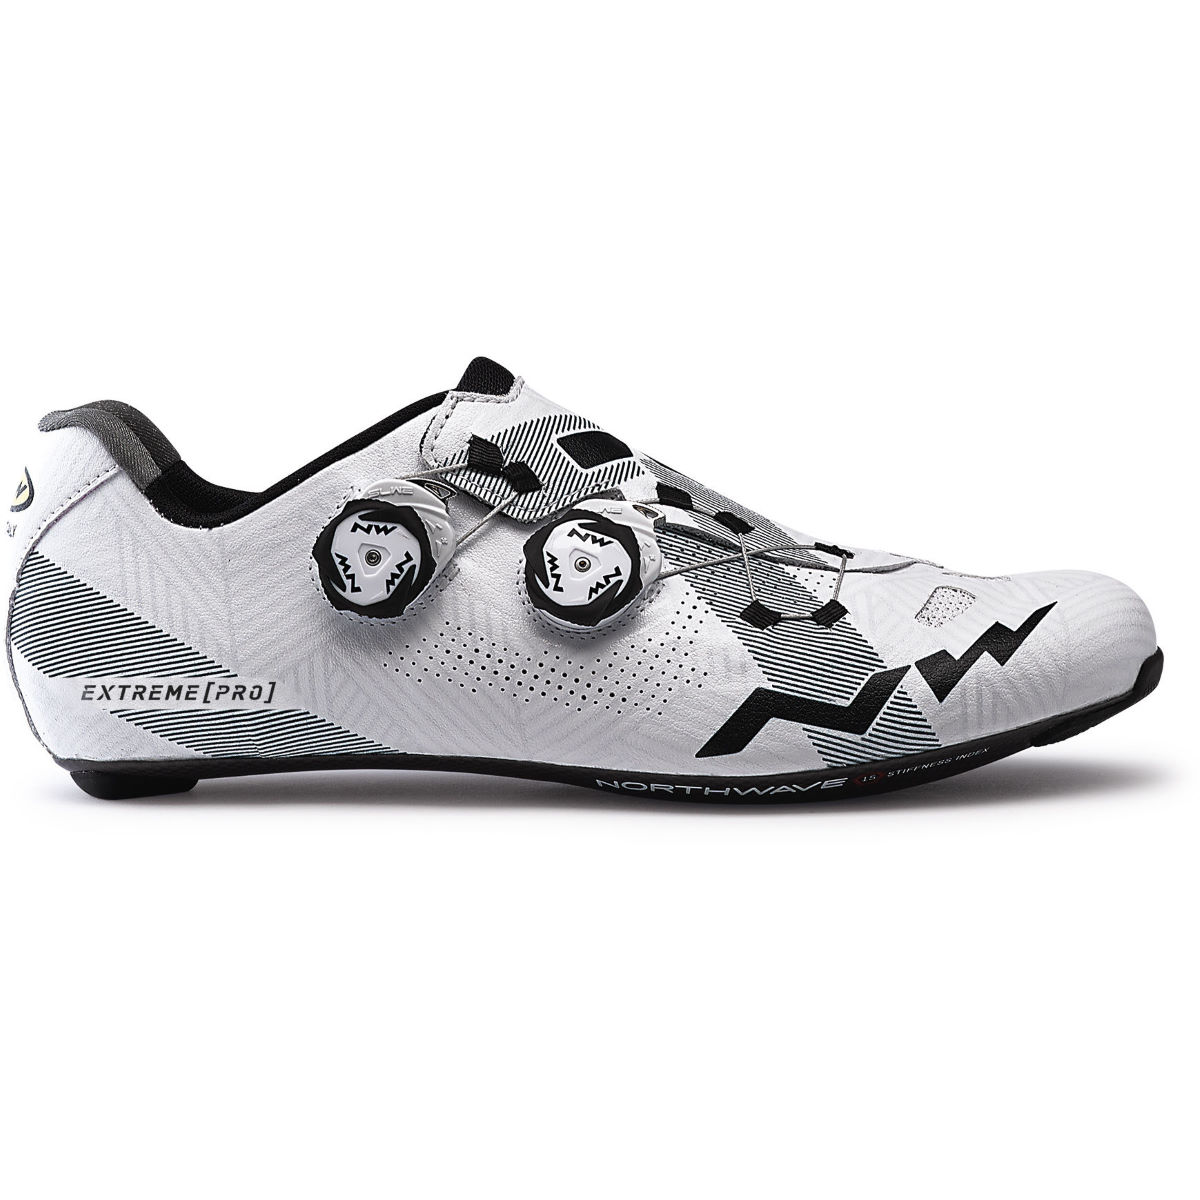 Northwave Extreme Pro Road Shoes - 39 White/grey  Cycling Shoes